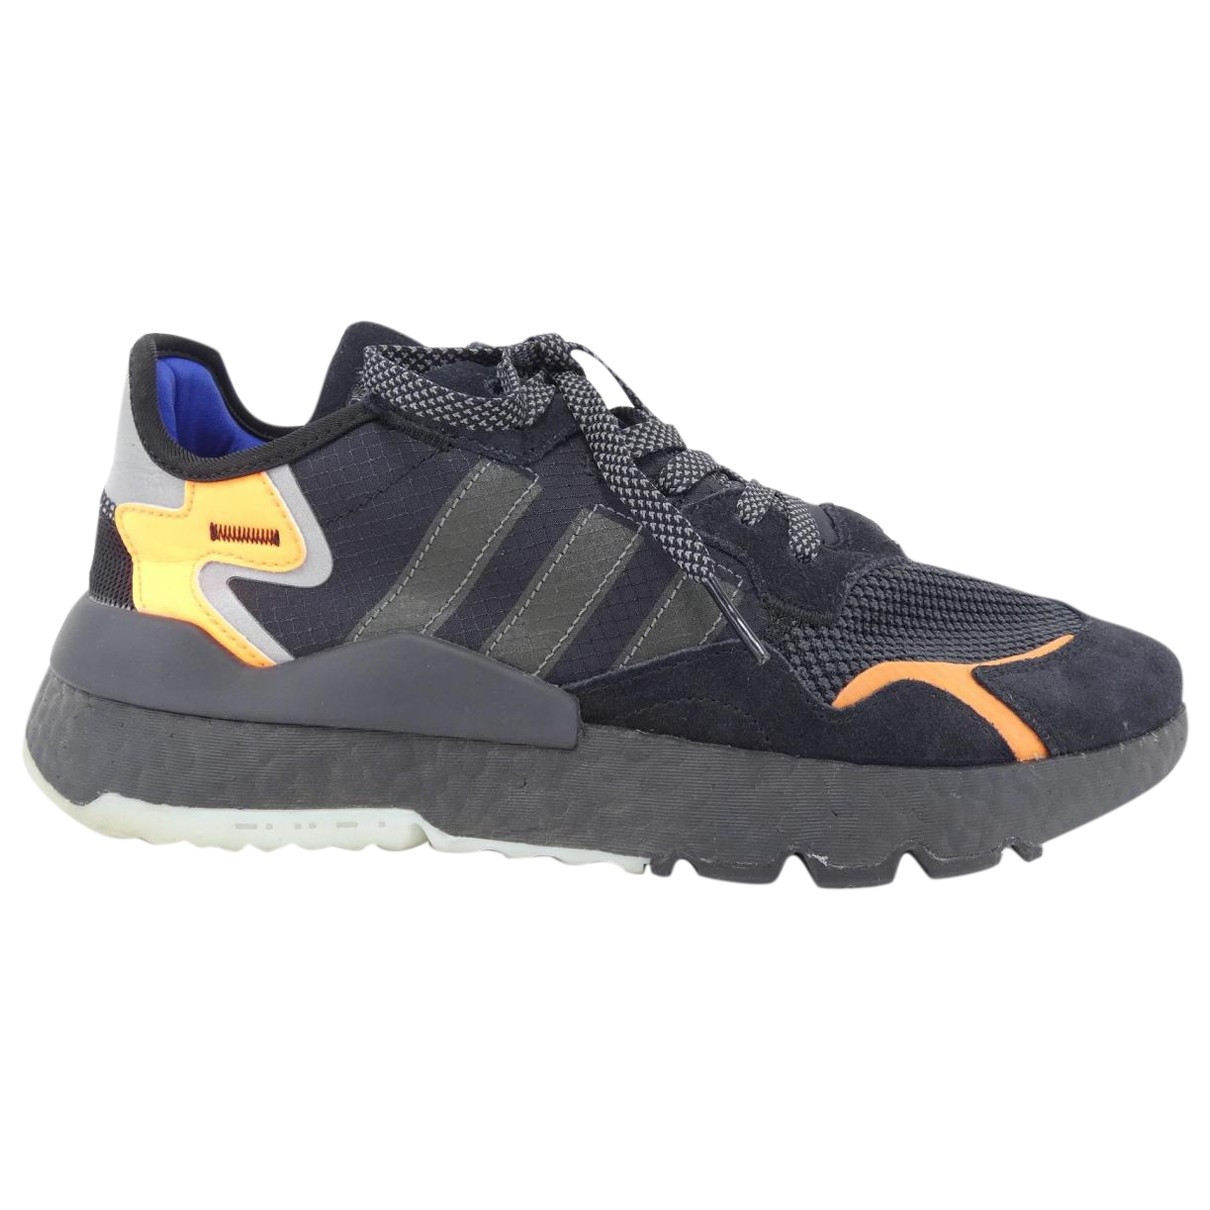 Adidas \N Black Cloth Trainers for Men 9 US